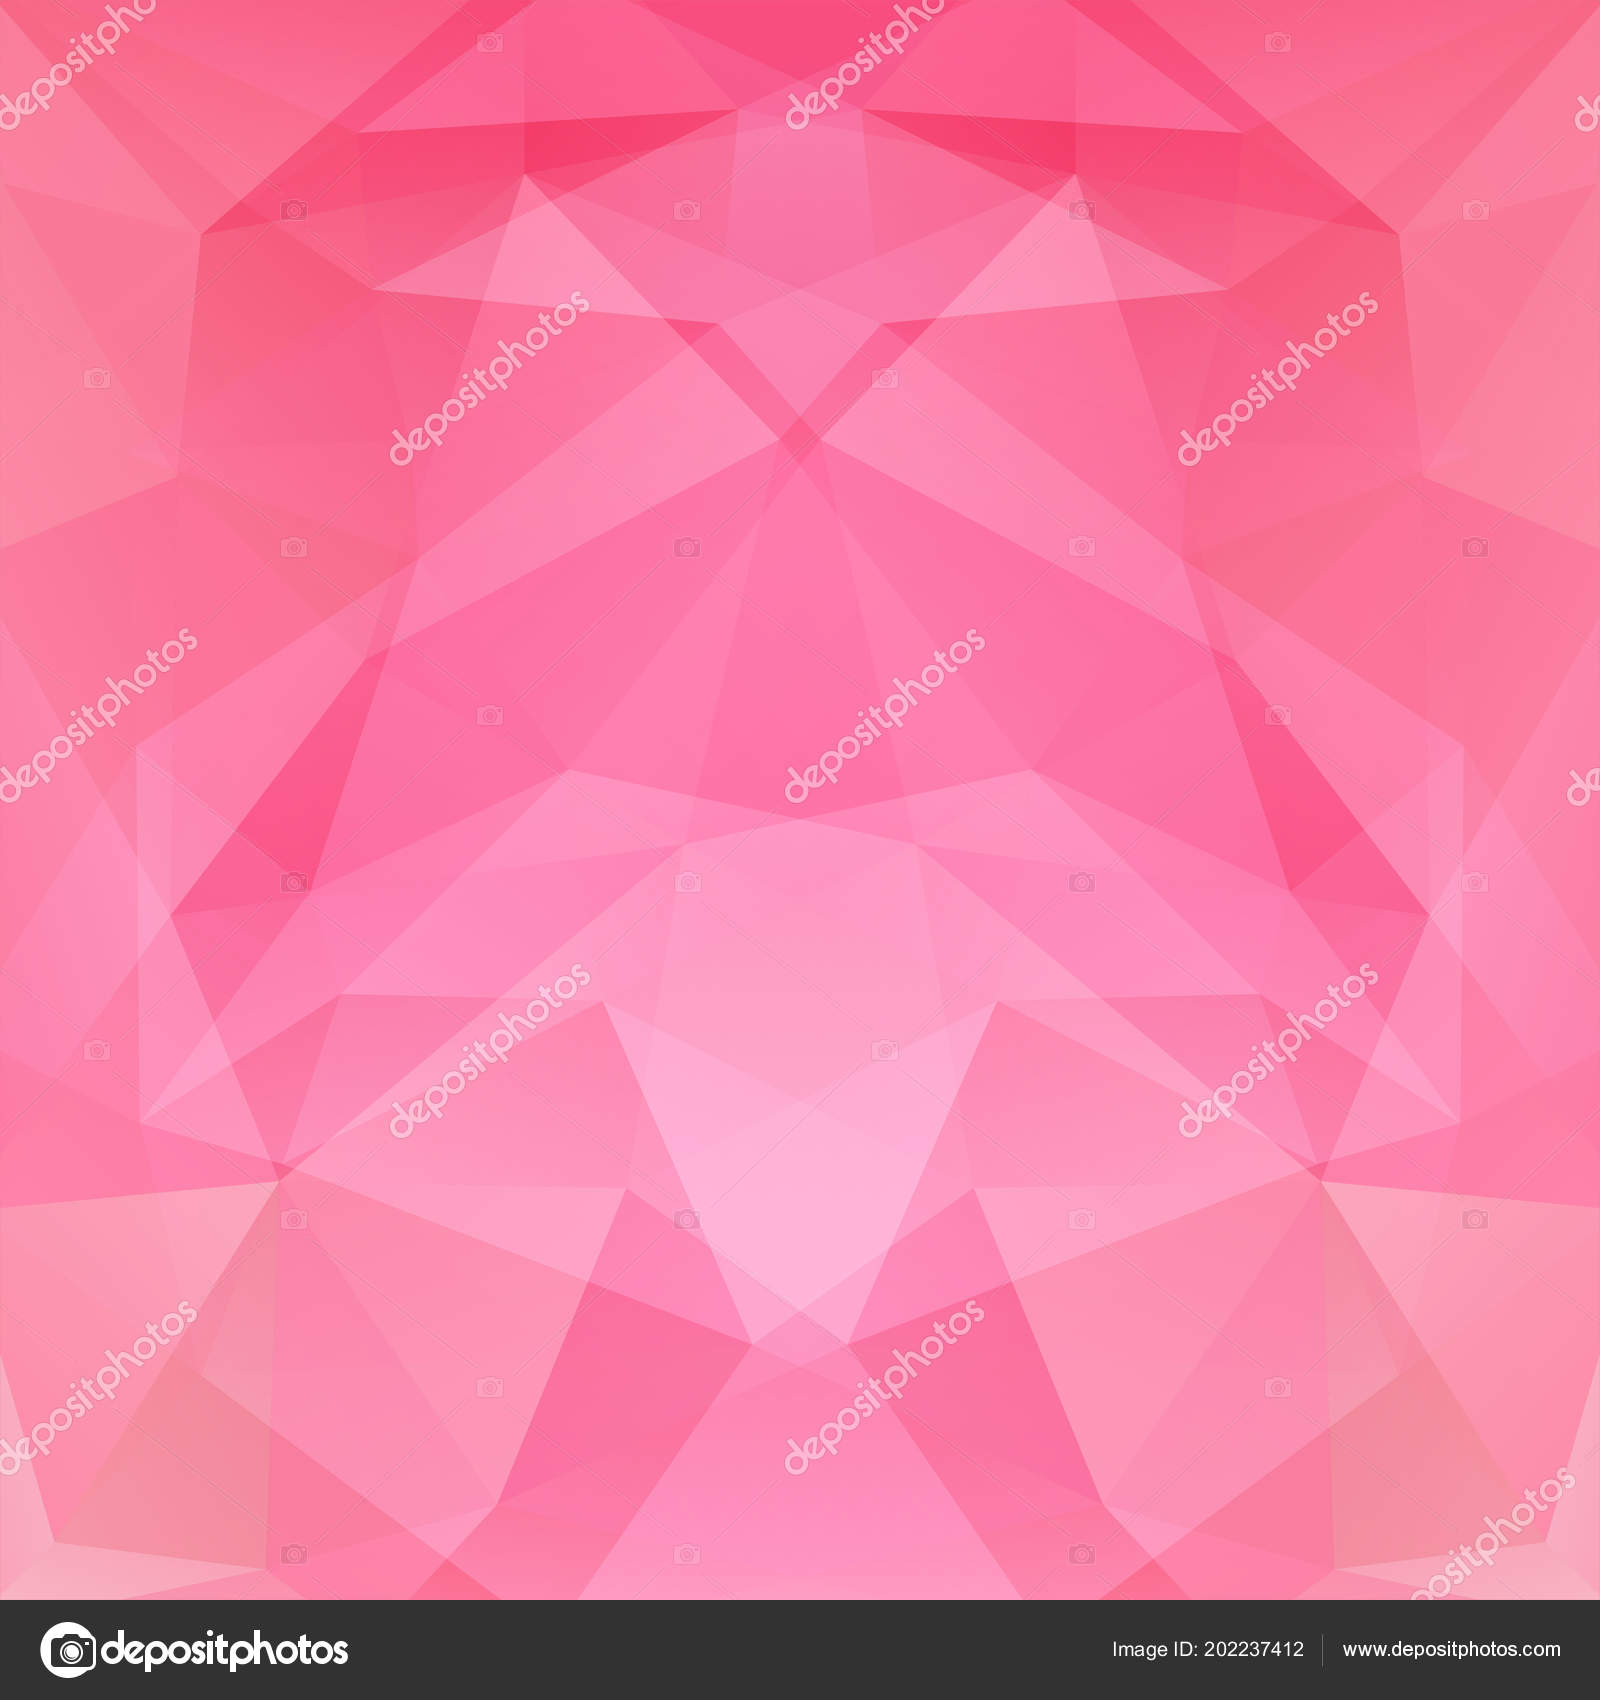 abstract background consisting pink triangles geometric design